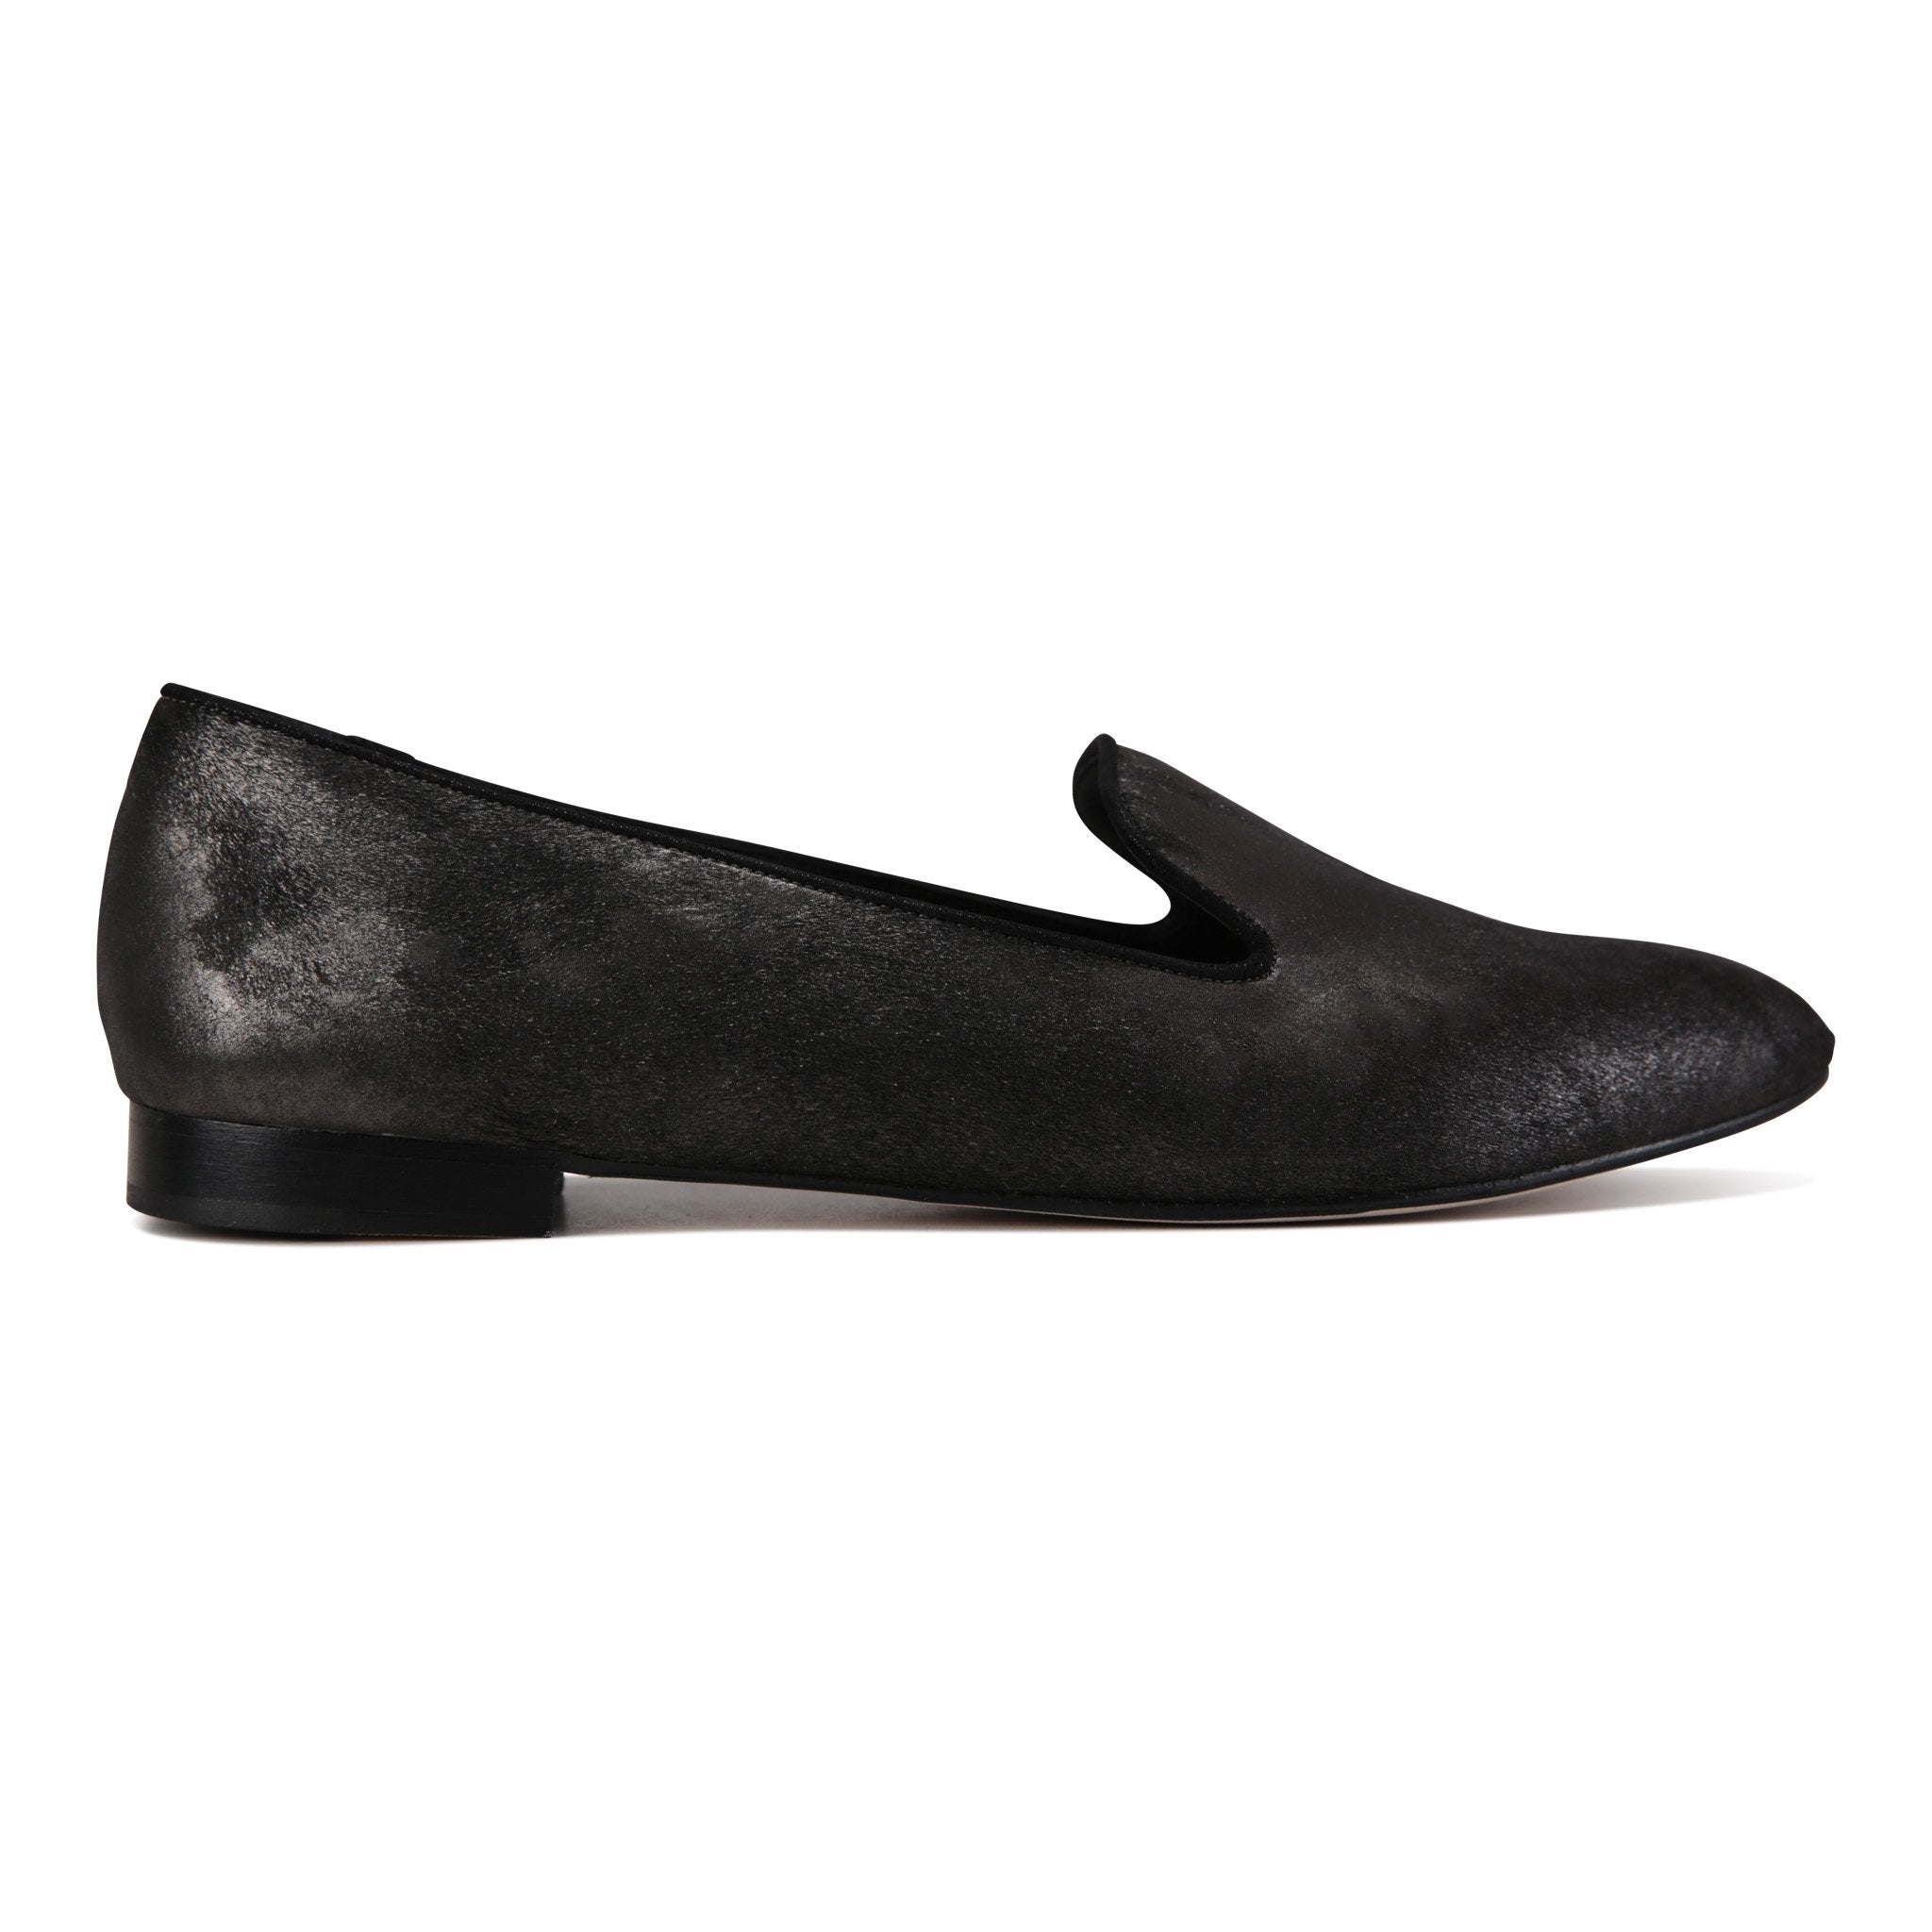 RAVENNA - Calf Hair Vintage Nero, VIAJIYU - Women's Hand Made Sustainable Luxury Shoes. Made in Italy. Made to Order.